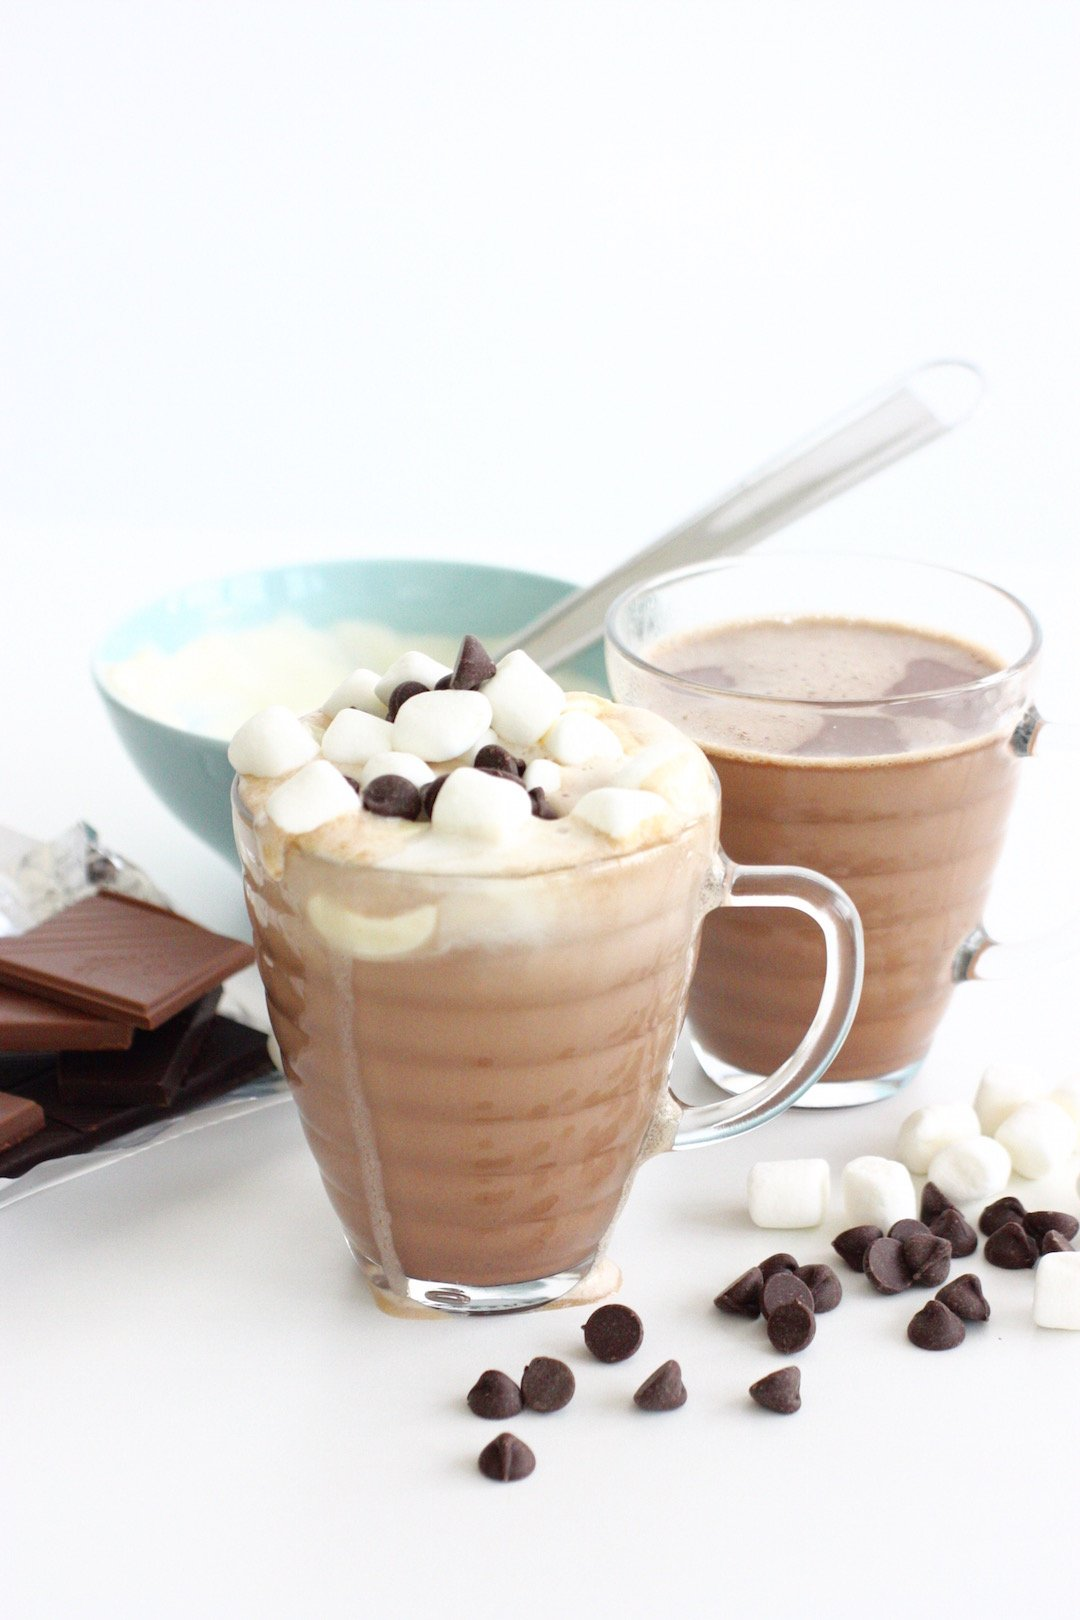 ultimate hot chocolate in glass mugs topped with cream, marshmallows and chocolate chips